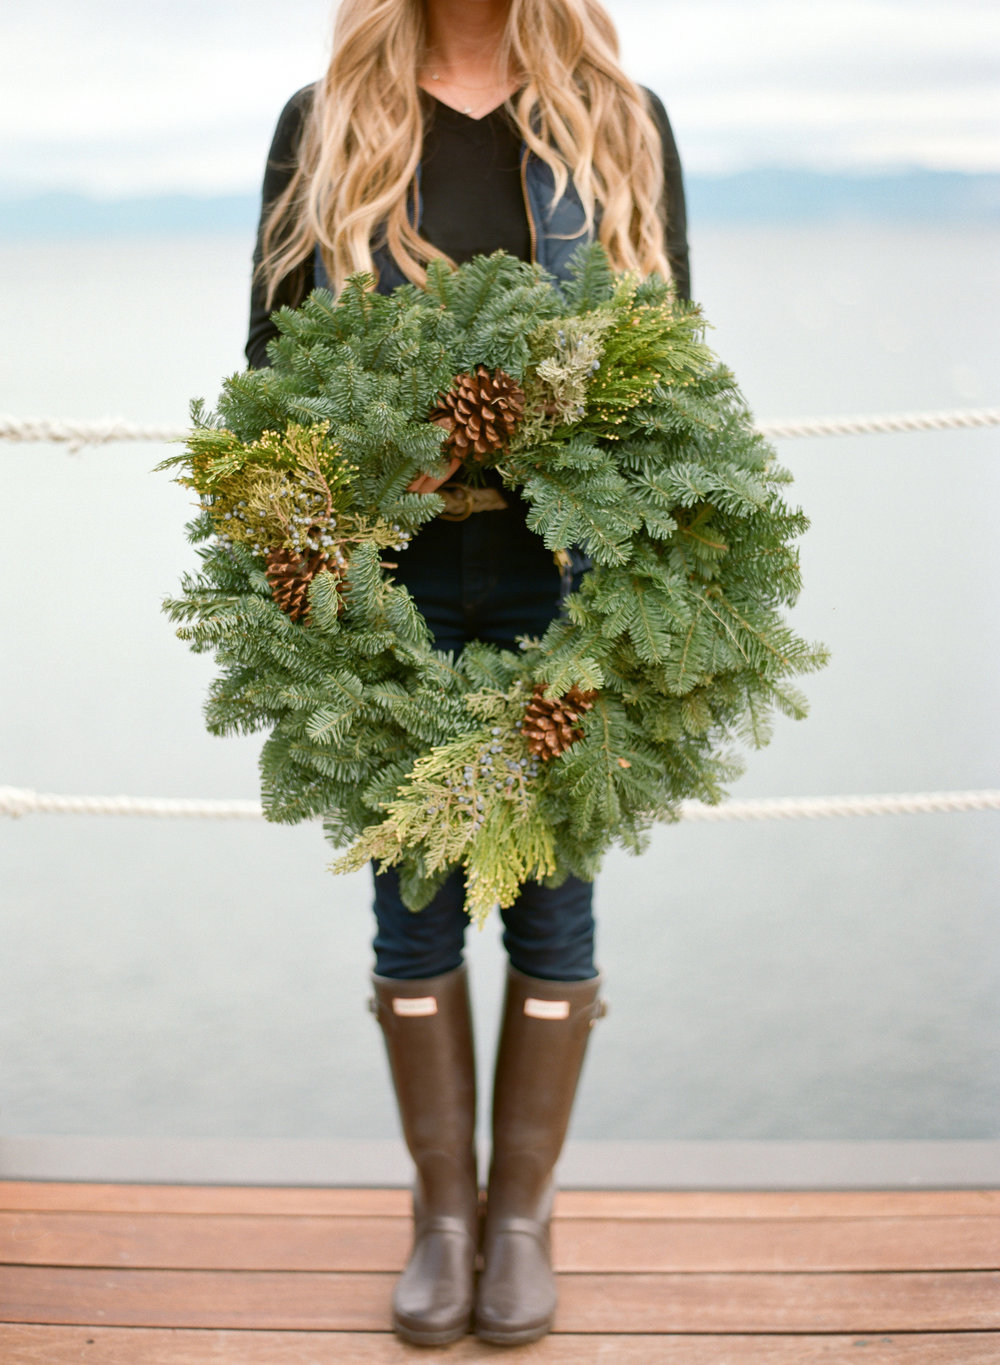 Christmas wreath & hunter boots / holiday outfit inspiration | asavvylifestyle.com {Melina Wallisch Photography}